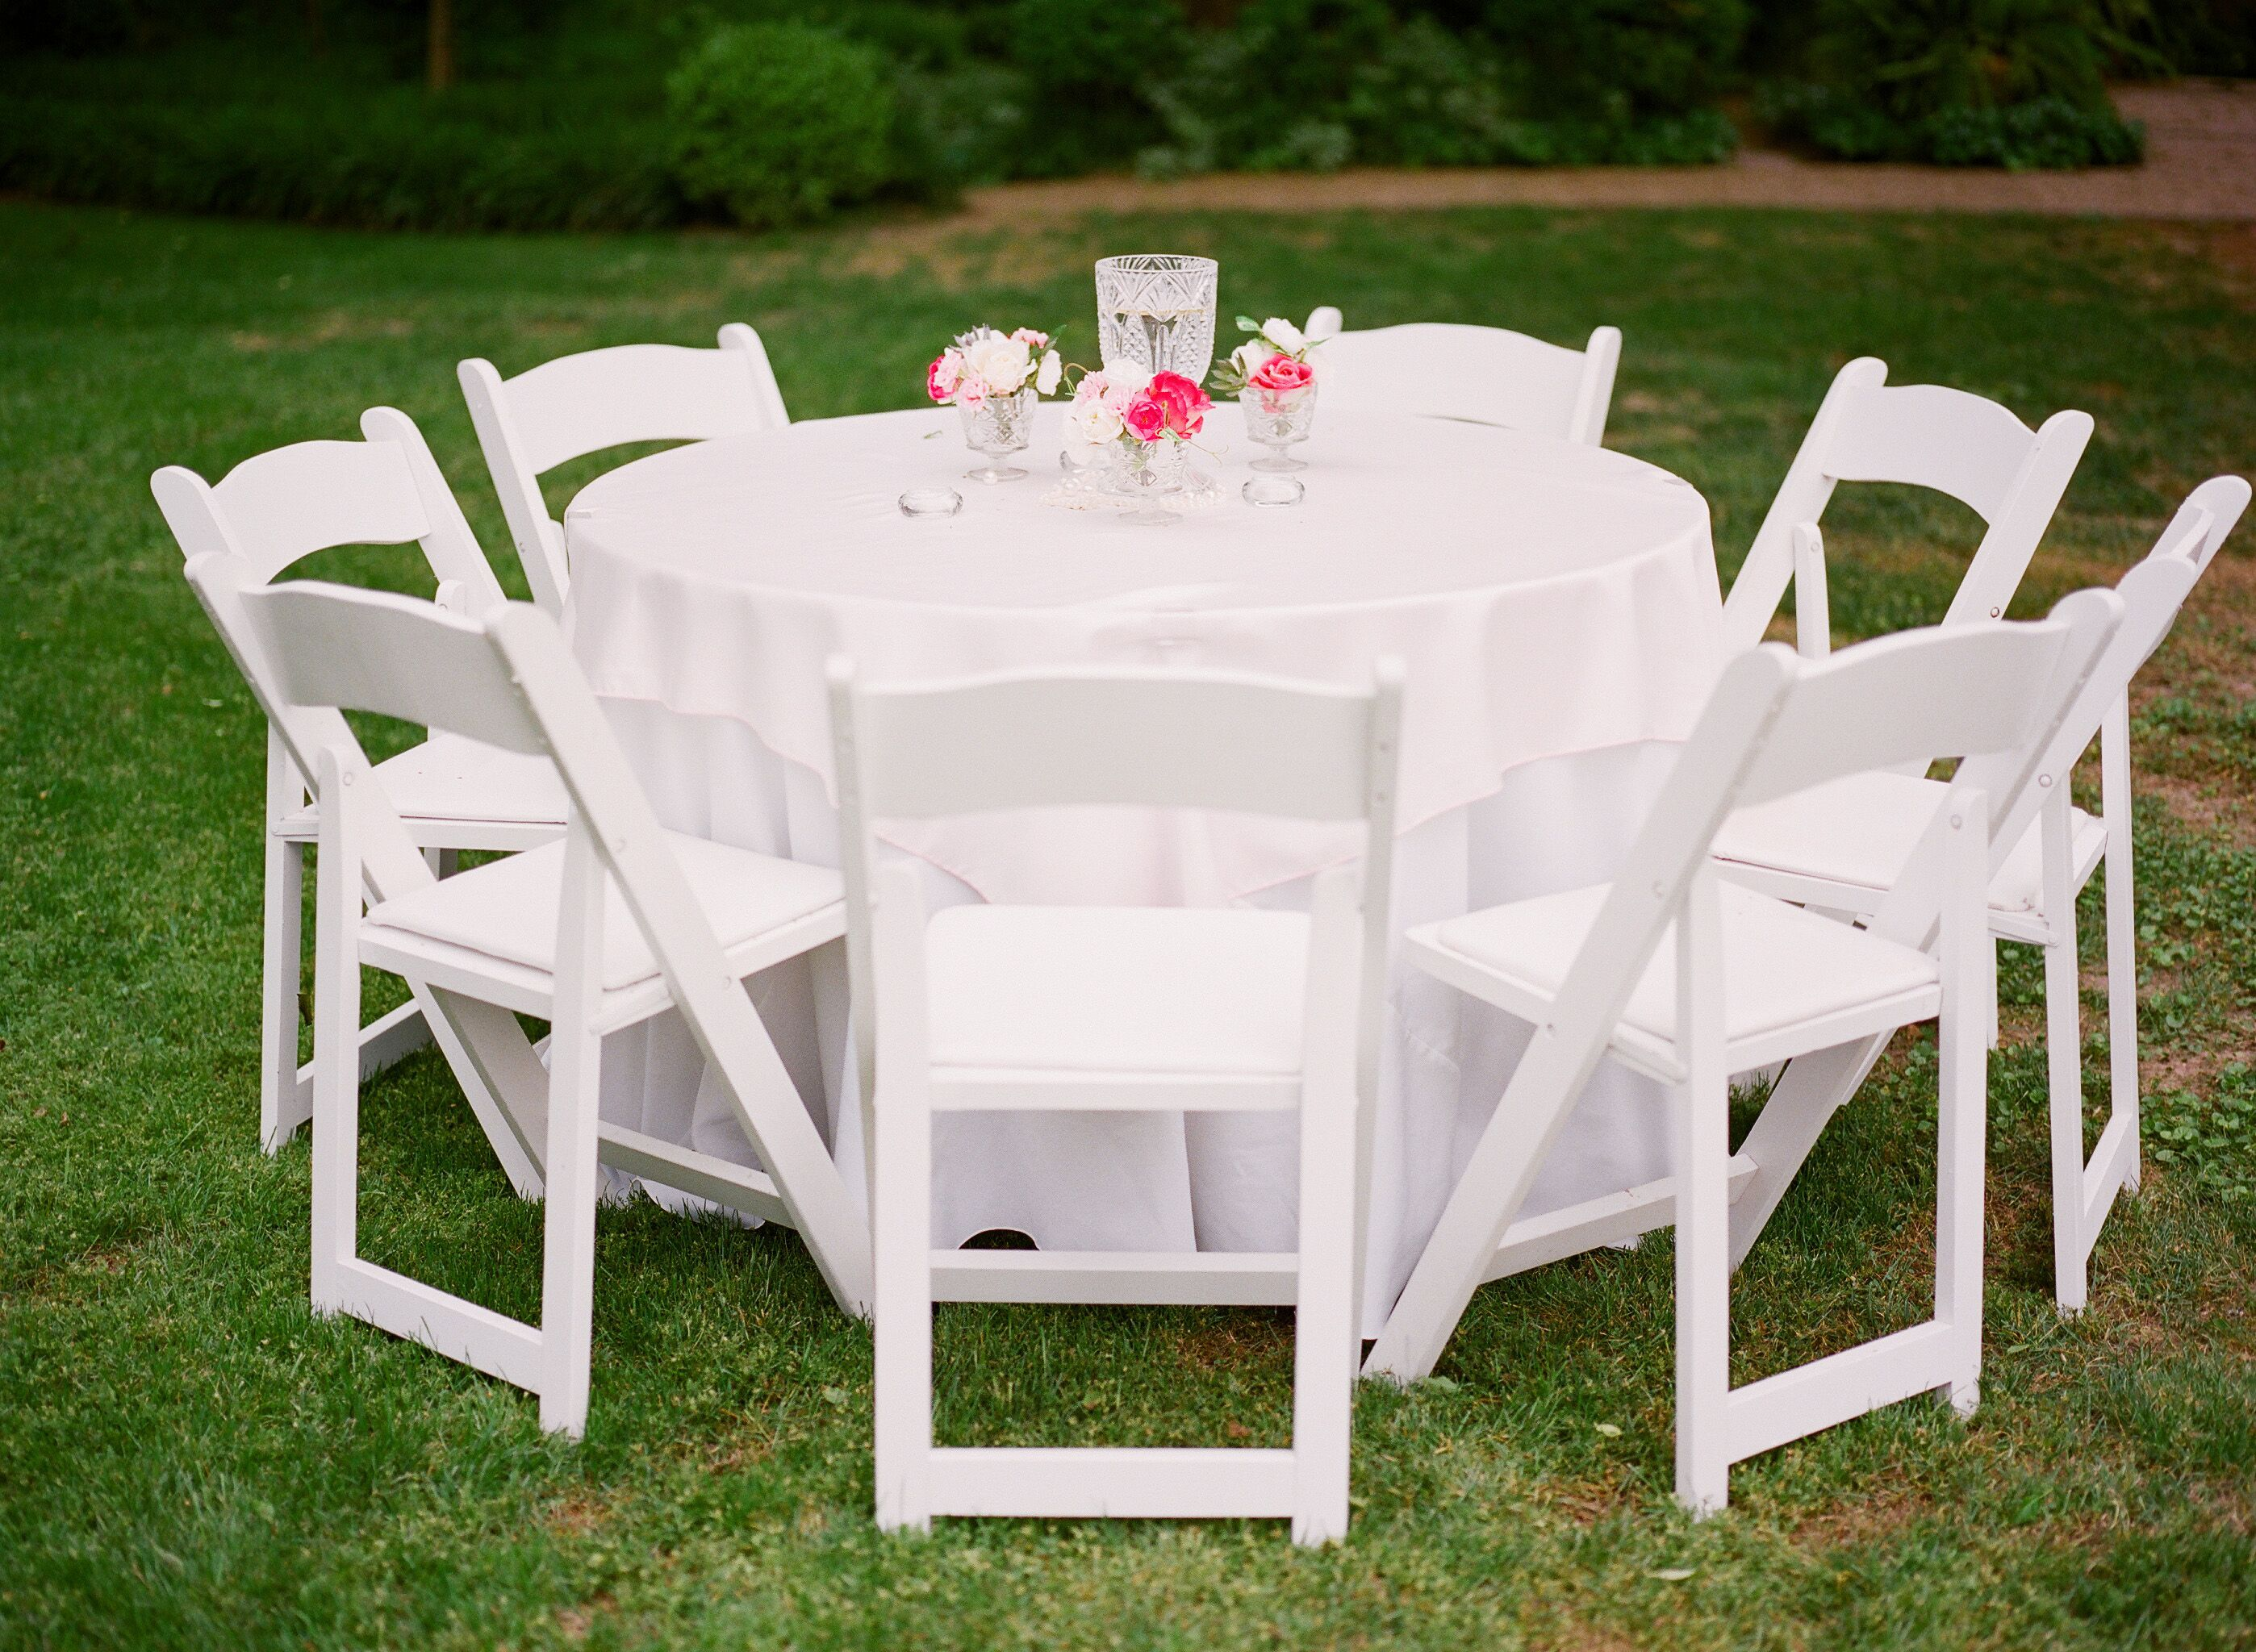 One of the tables for the reception